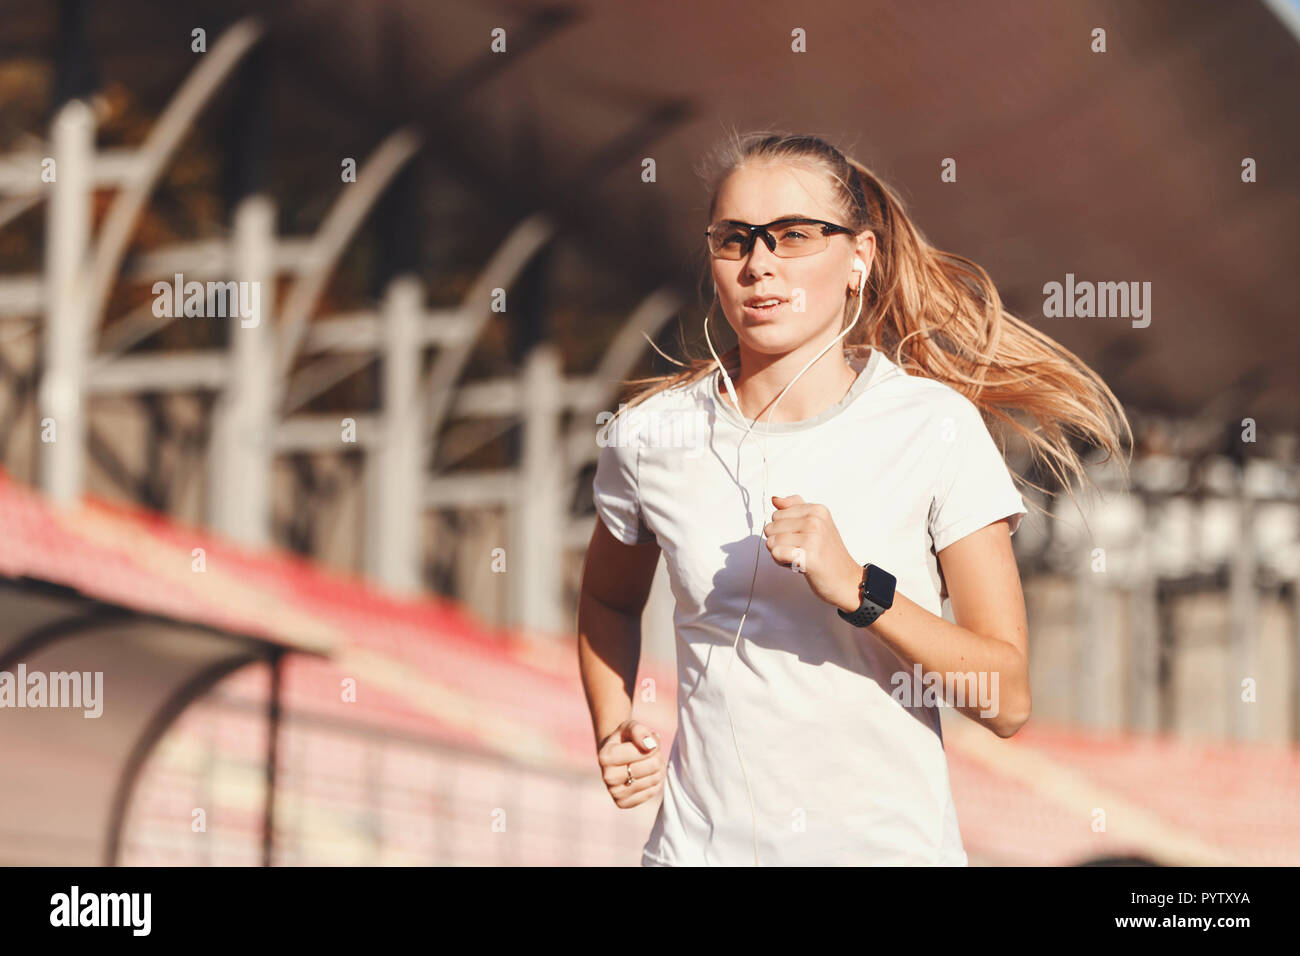 Fitness blonde long haired woman in sportswear listening music and running at the football stadium outdoor, healthy lifestyle and people concept - Stock Photo